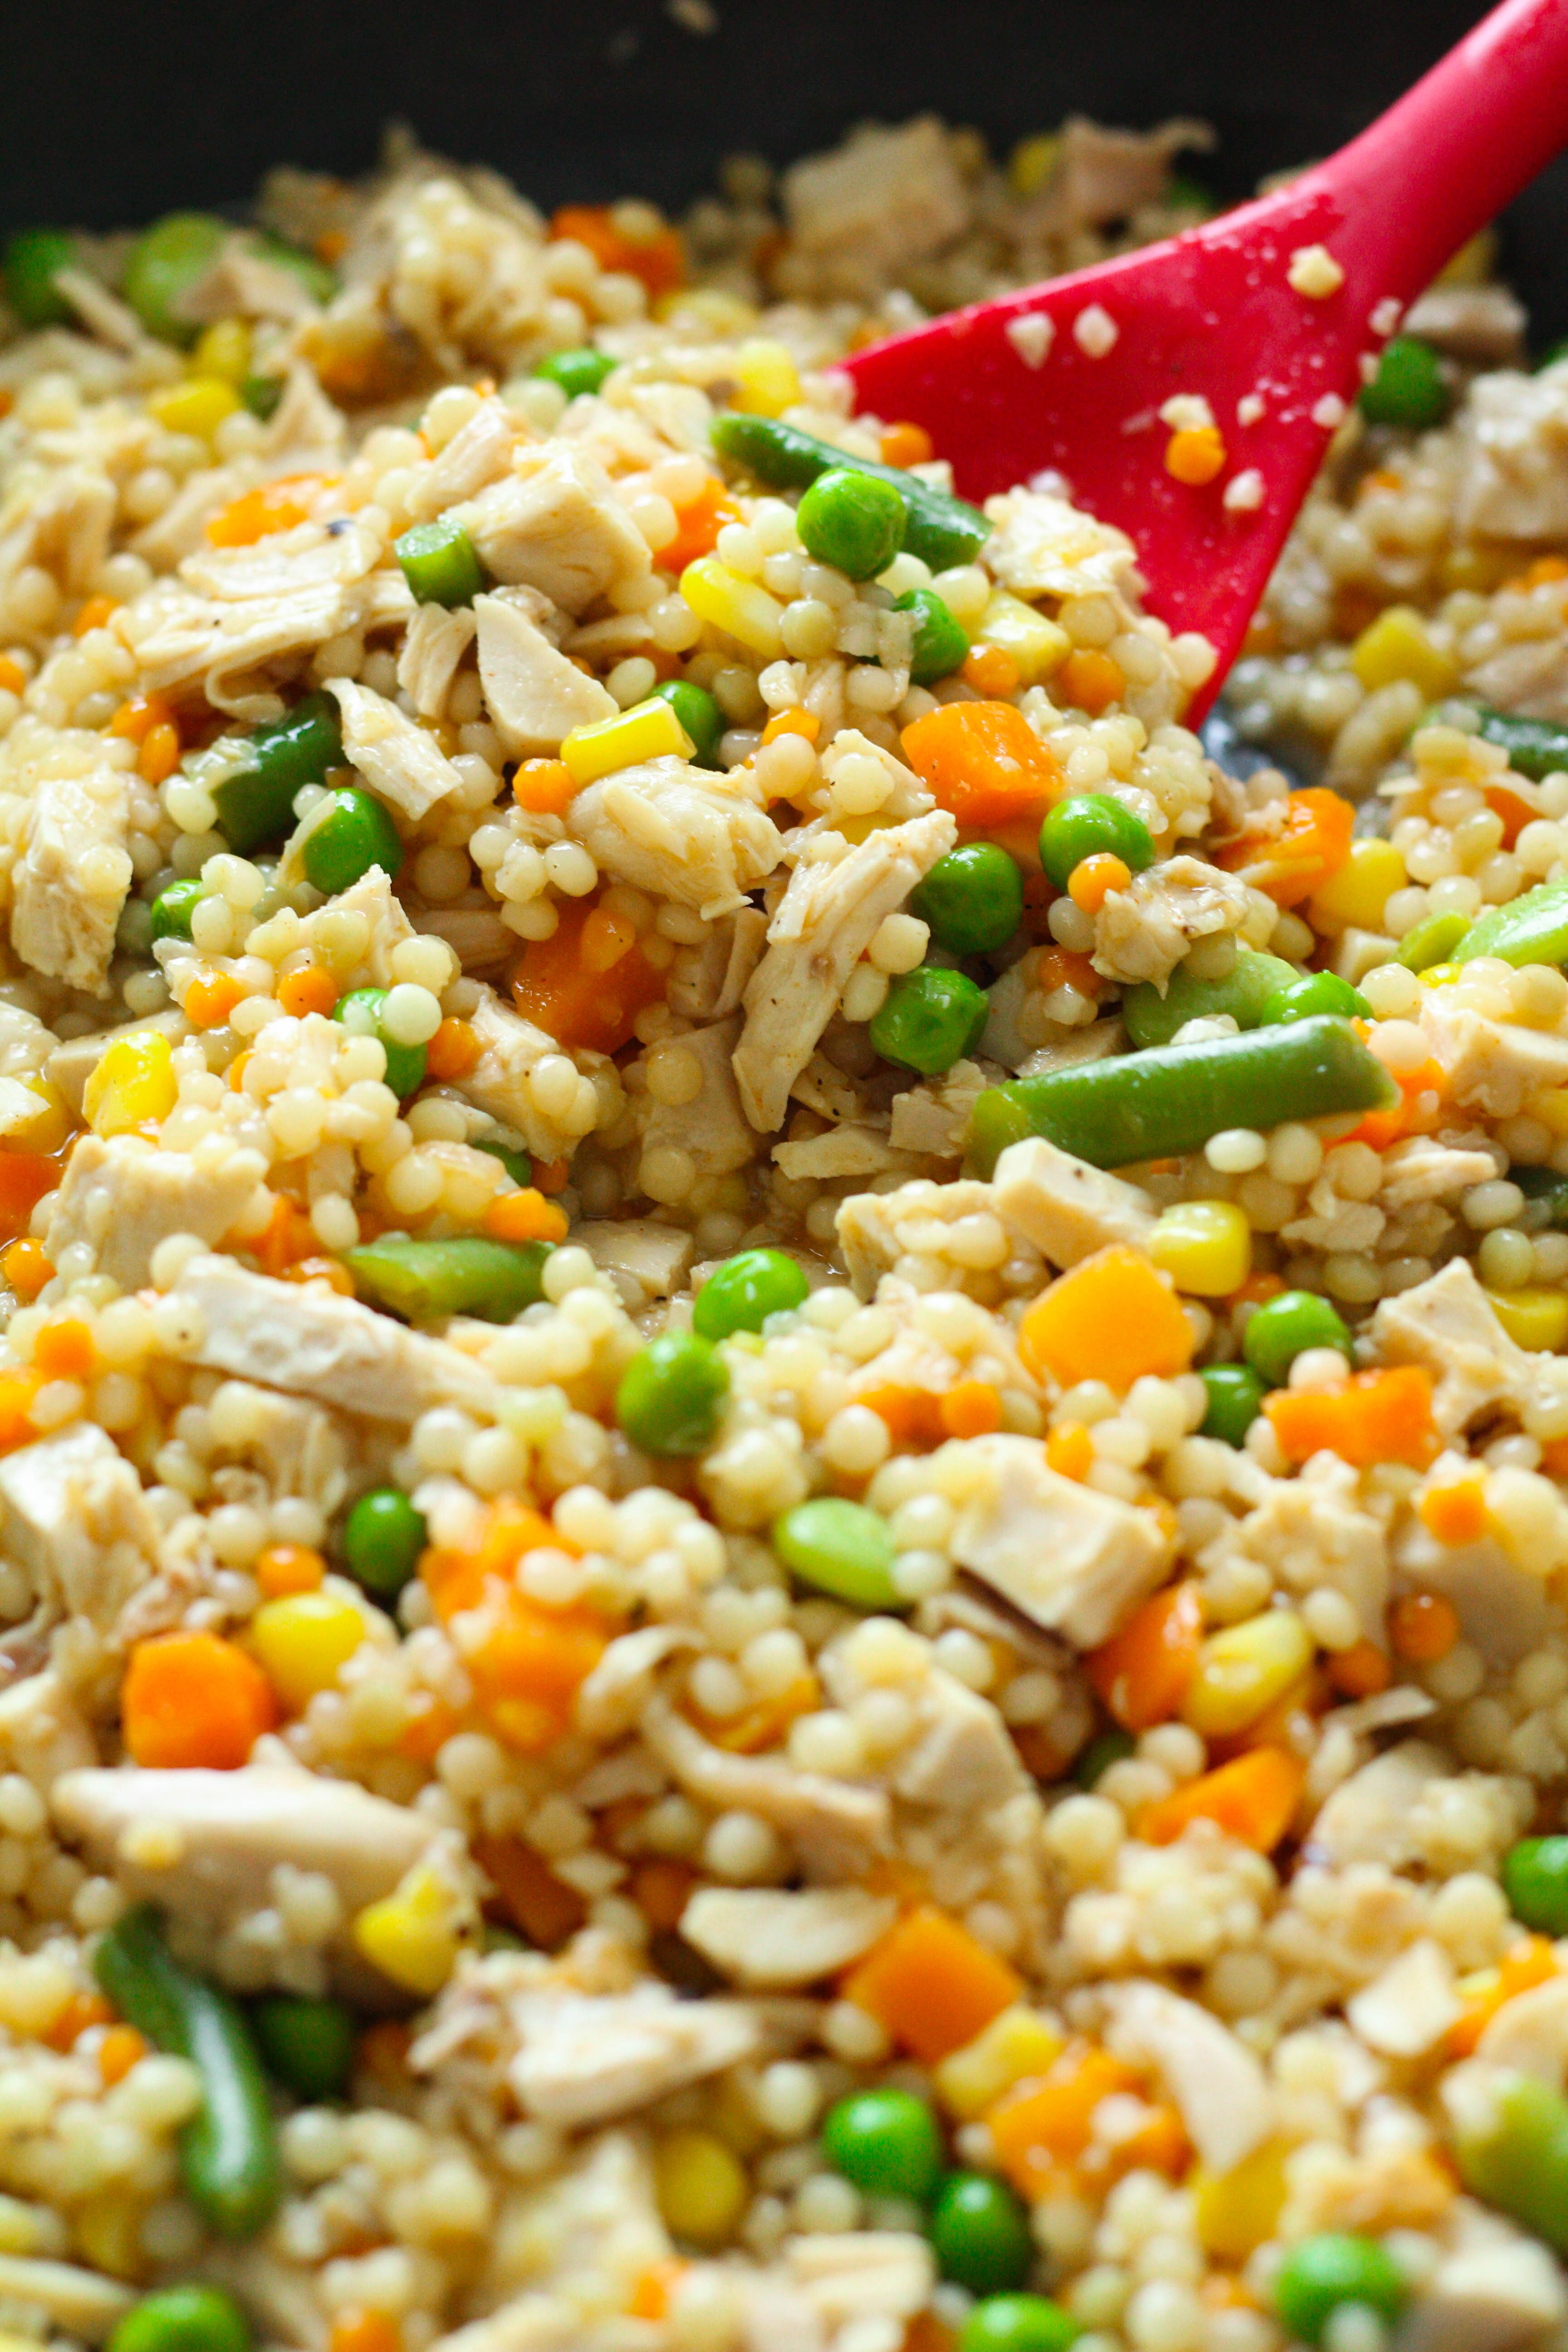 Pearled couscous chicken, simmered in broth with mixed veggies. An easy, delicious dinner that can be ready in less than 15 minutes.